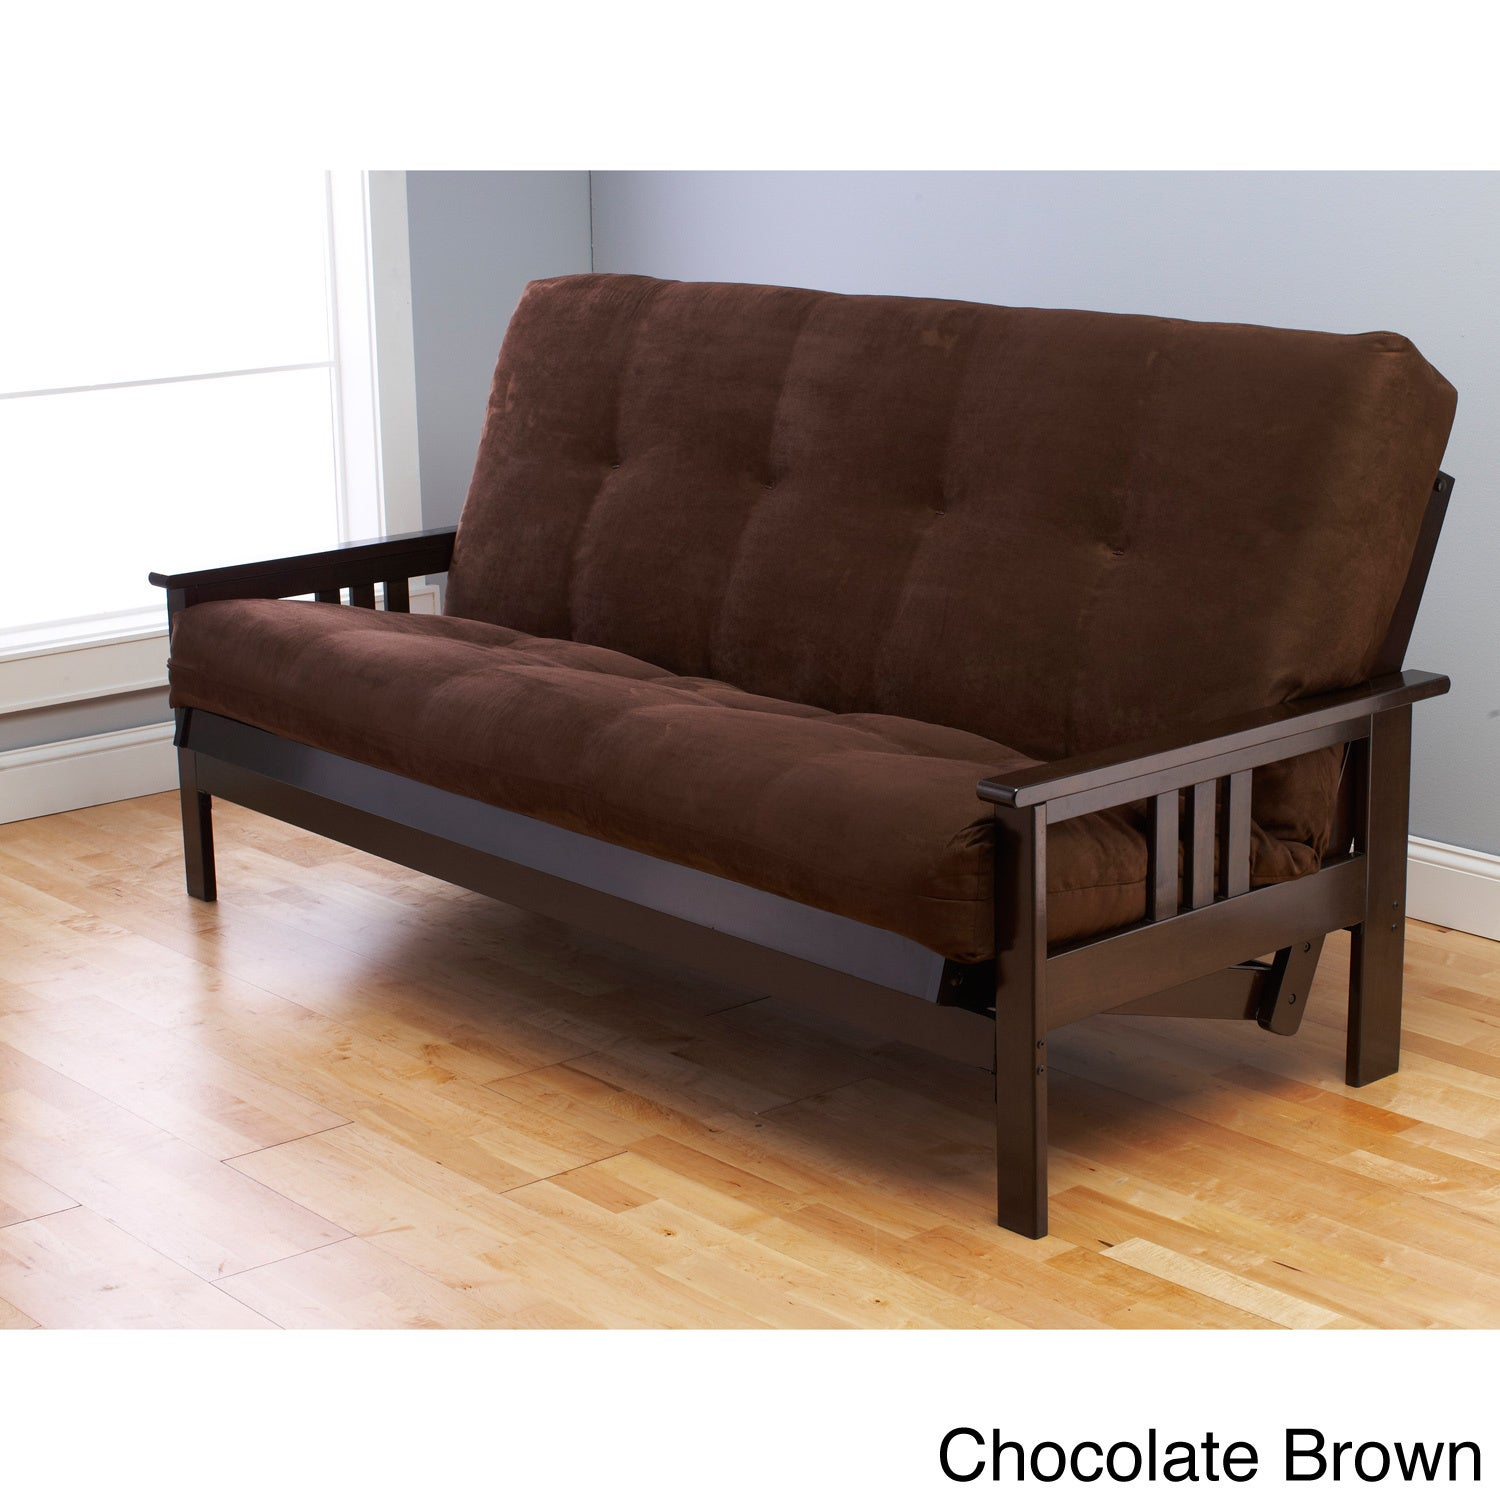 loveseats well winds adamhosmer com futon trading archives indoor sea seats casual furniture seat love as inspire co